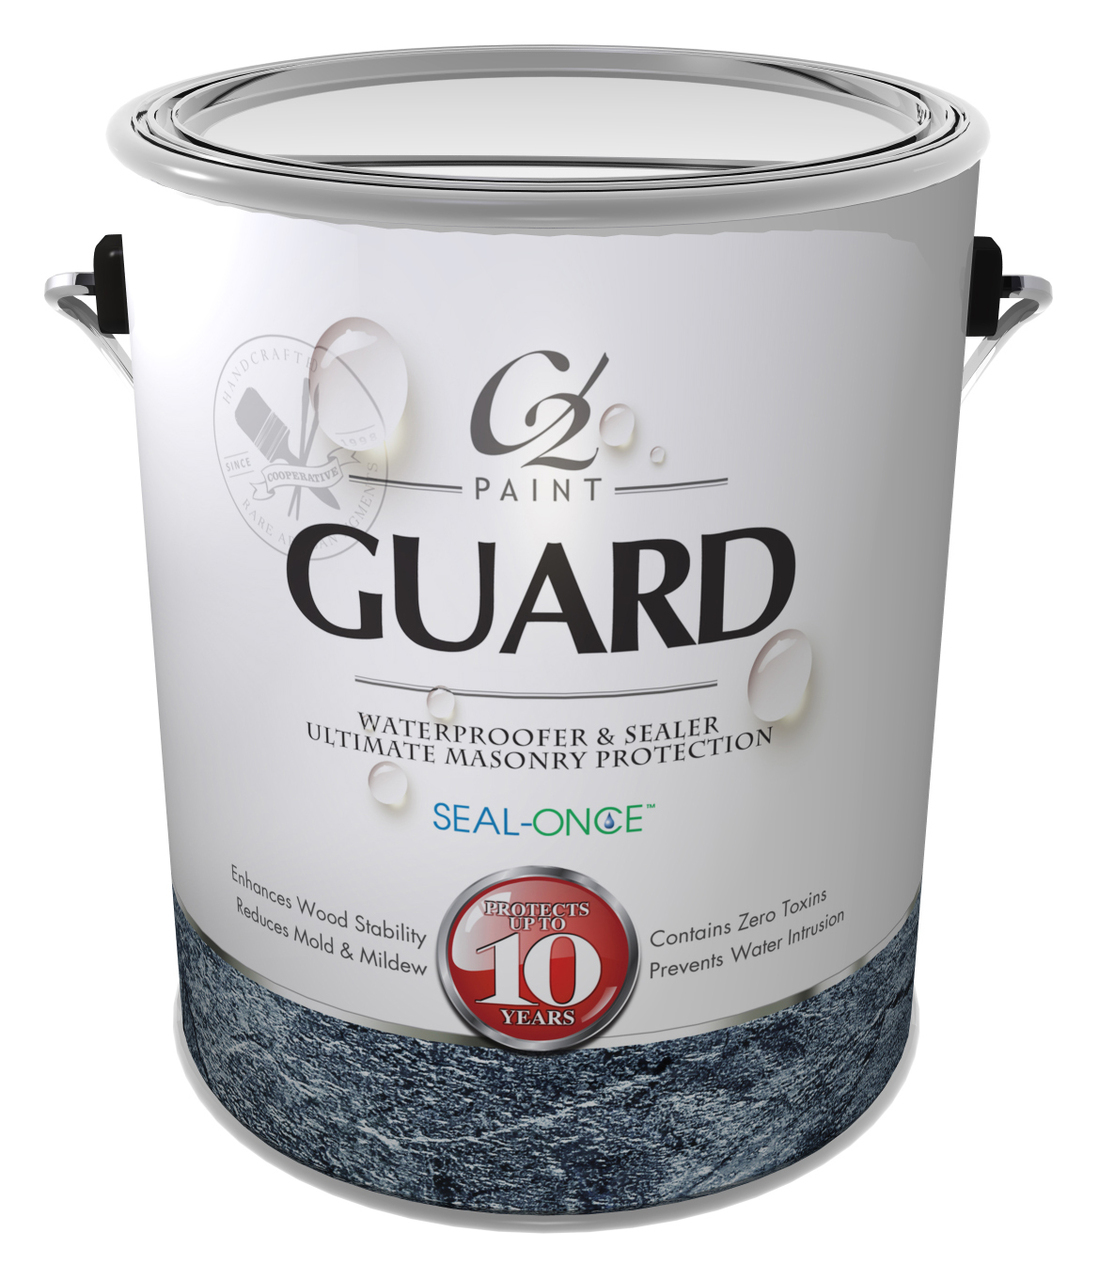 c2_guard_masonry_gallon__61336.1411539274.1280.1280